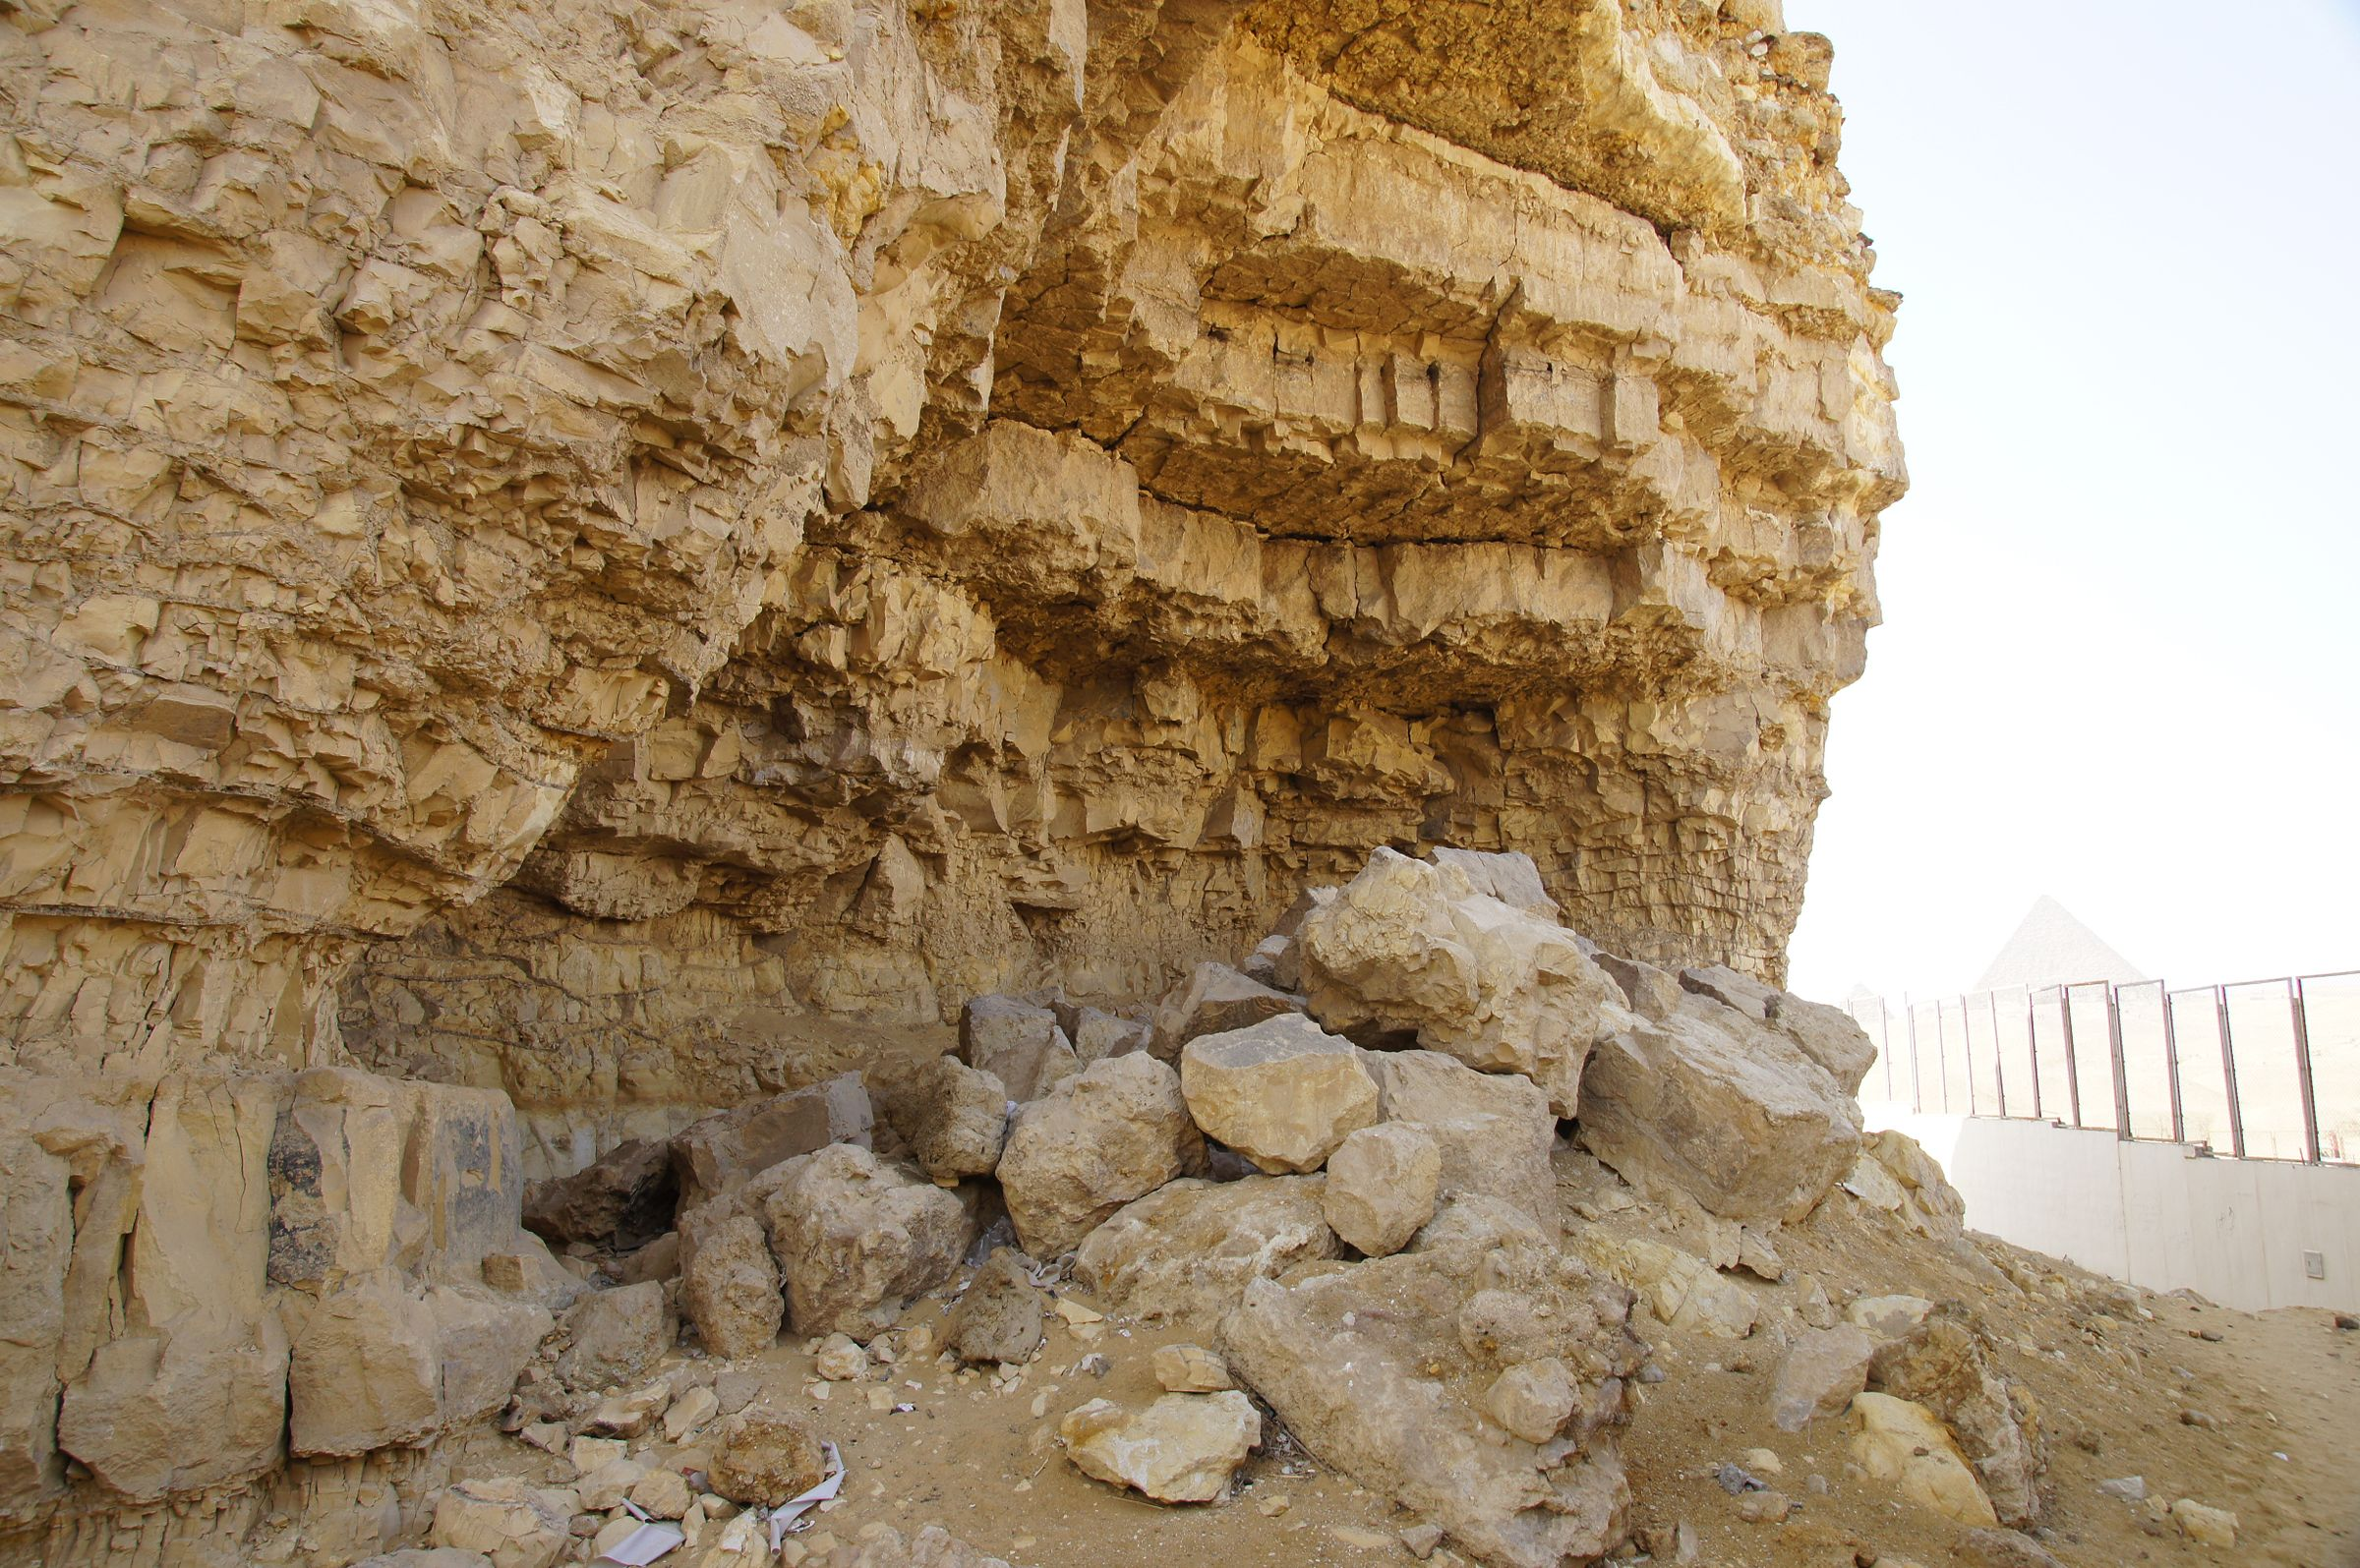 South Giza: Site: Giza; View: Southern Mount, Muslim Cemetery, Menkaure Pyramid